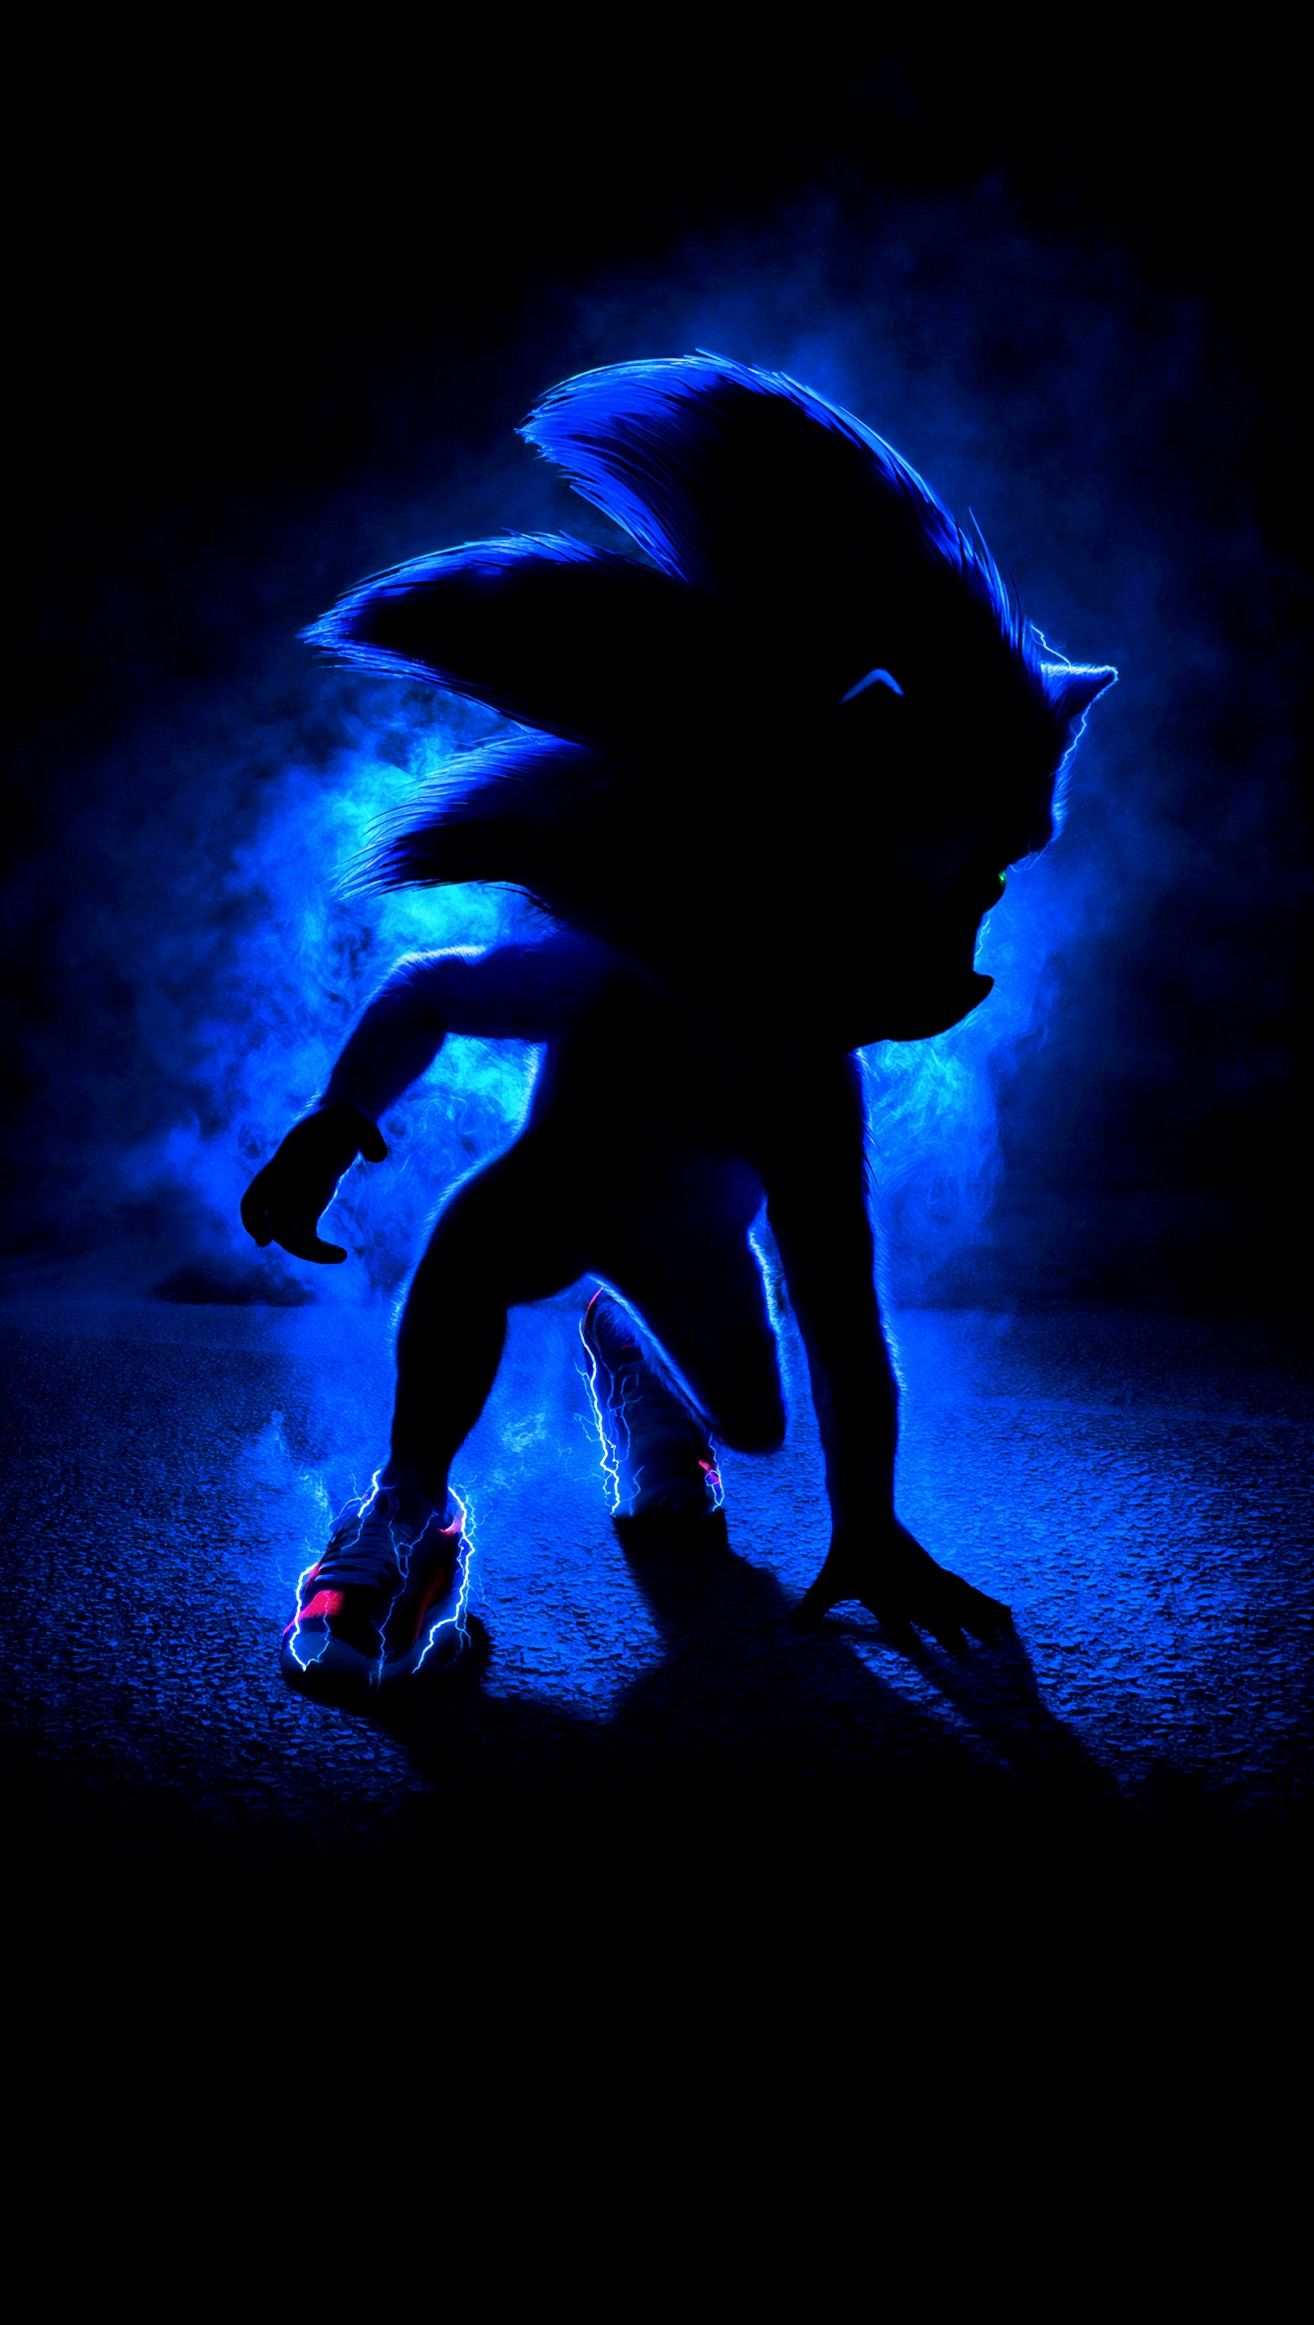 Sonic The Hedgehog Samsung Wallpaper Cartoon Wallpaper Superhero Wallpaper